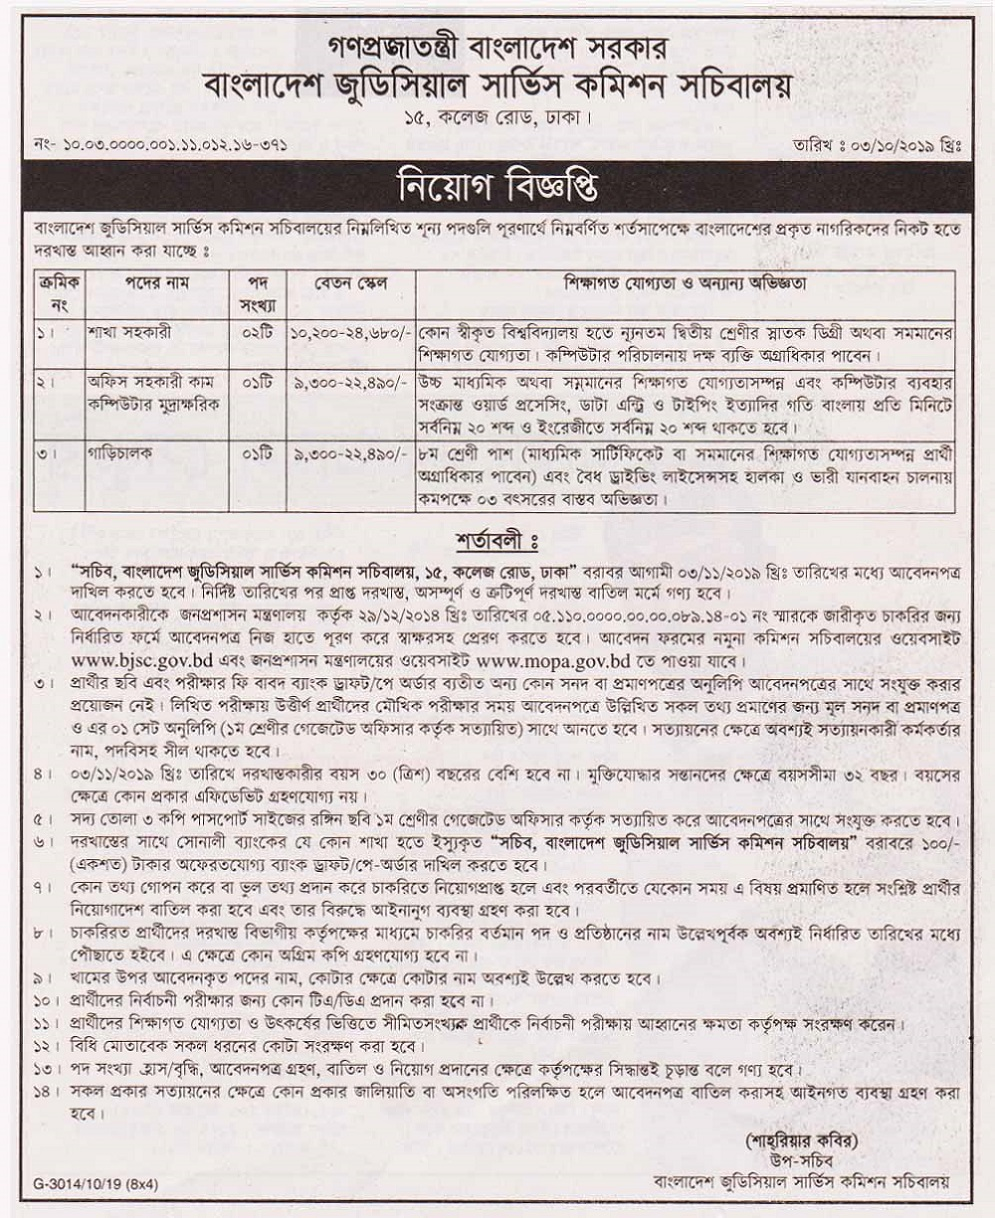 Bangladesh Judicial Service Commission Job Circular 2019